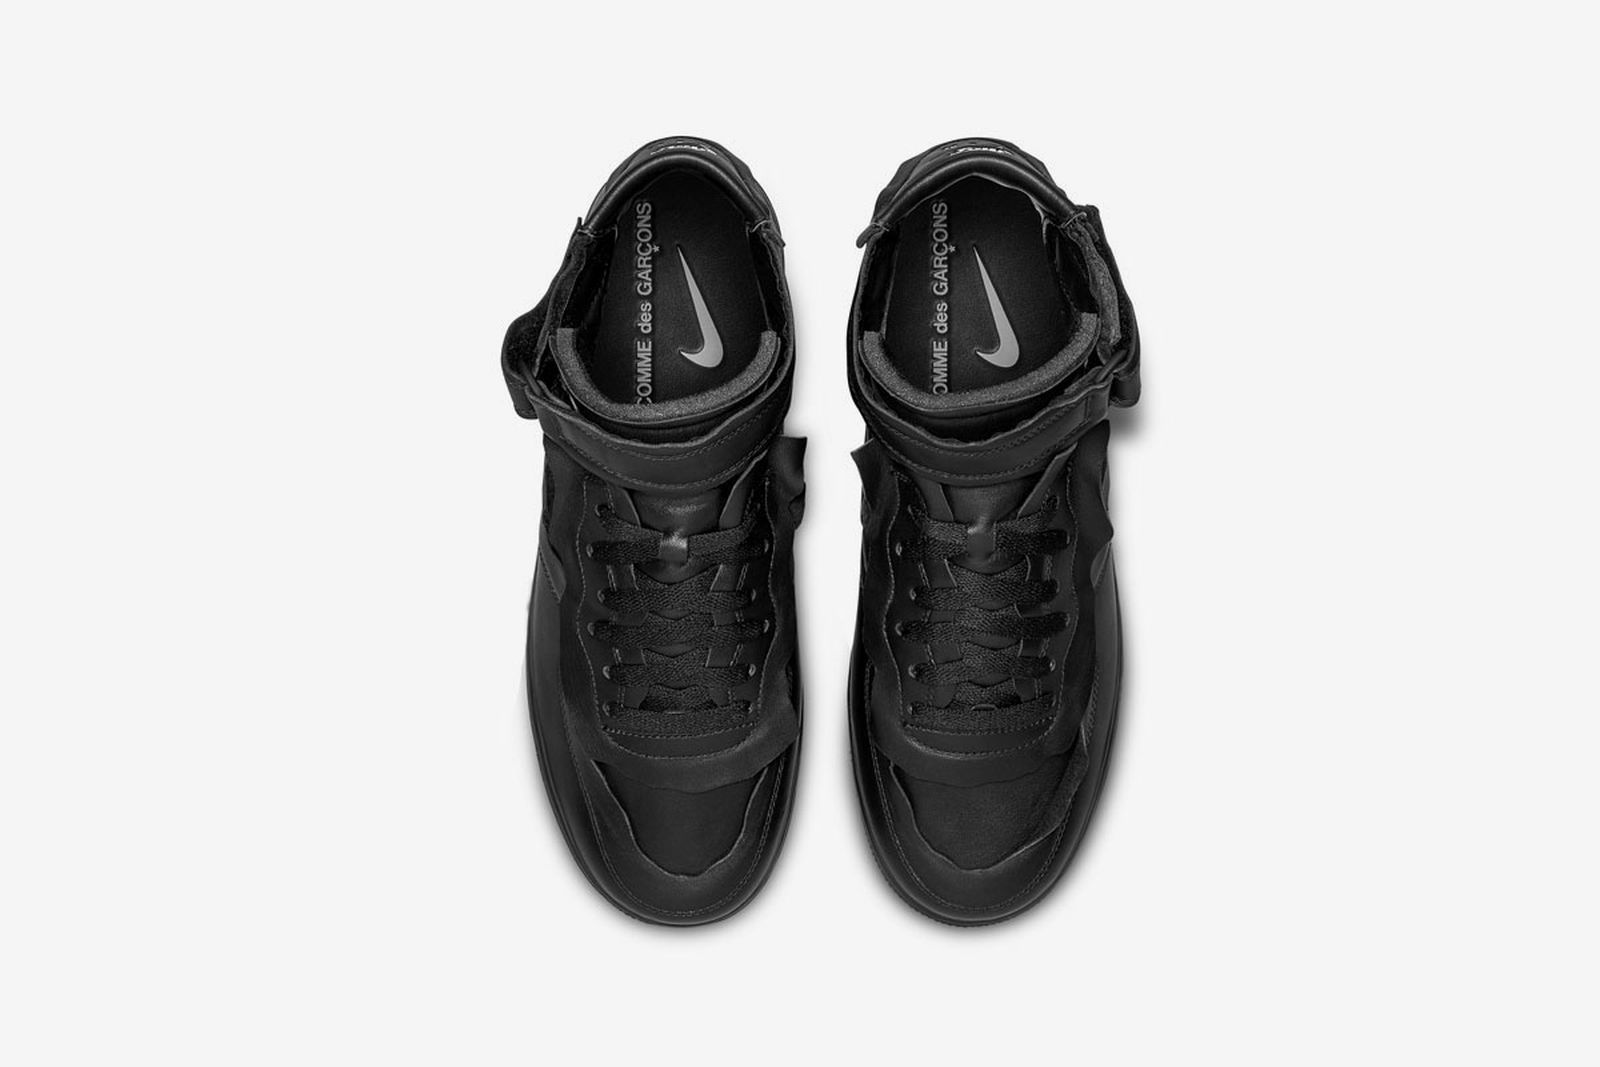 comme-des-garcons-nike-air-force-1-mid-release-date-price-019